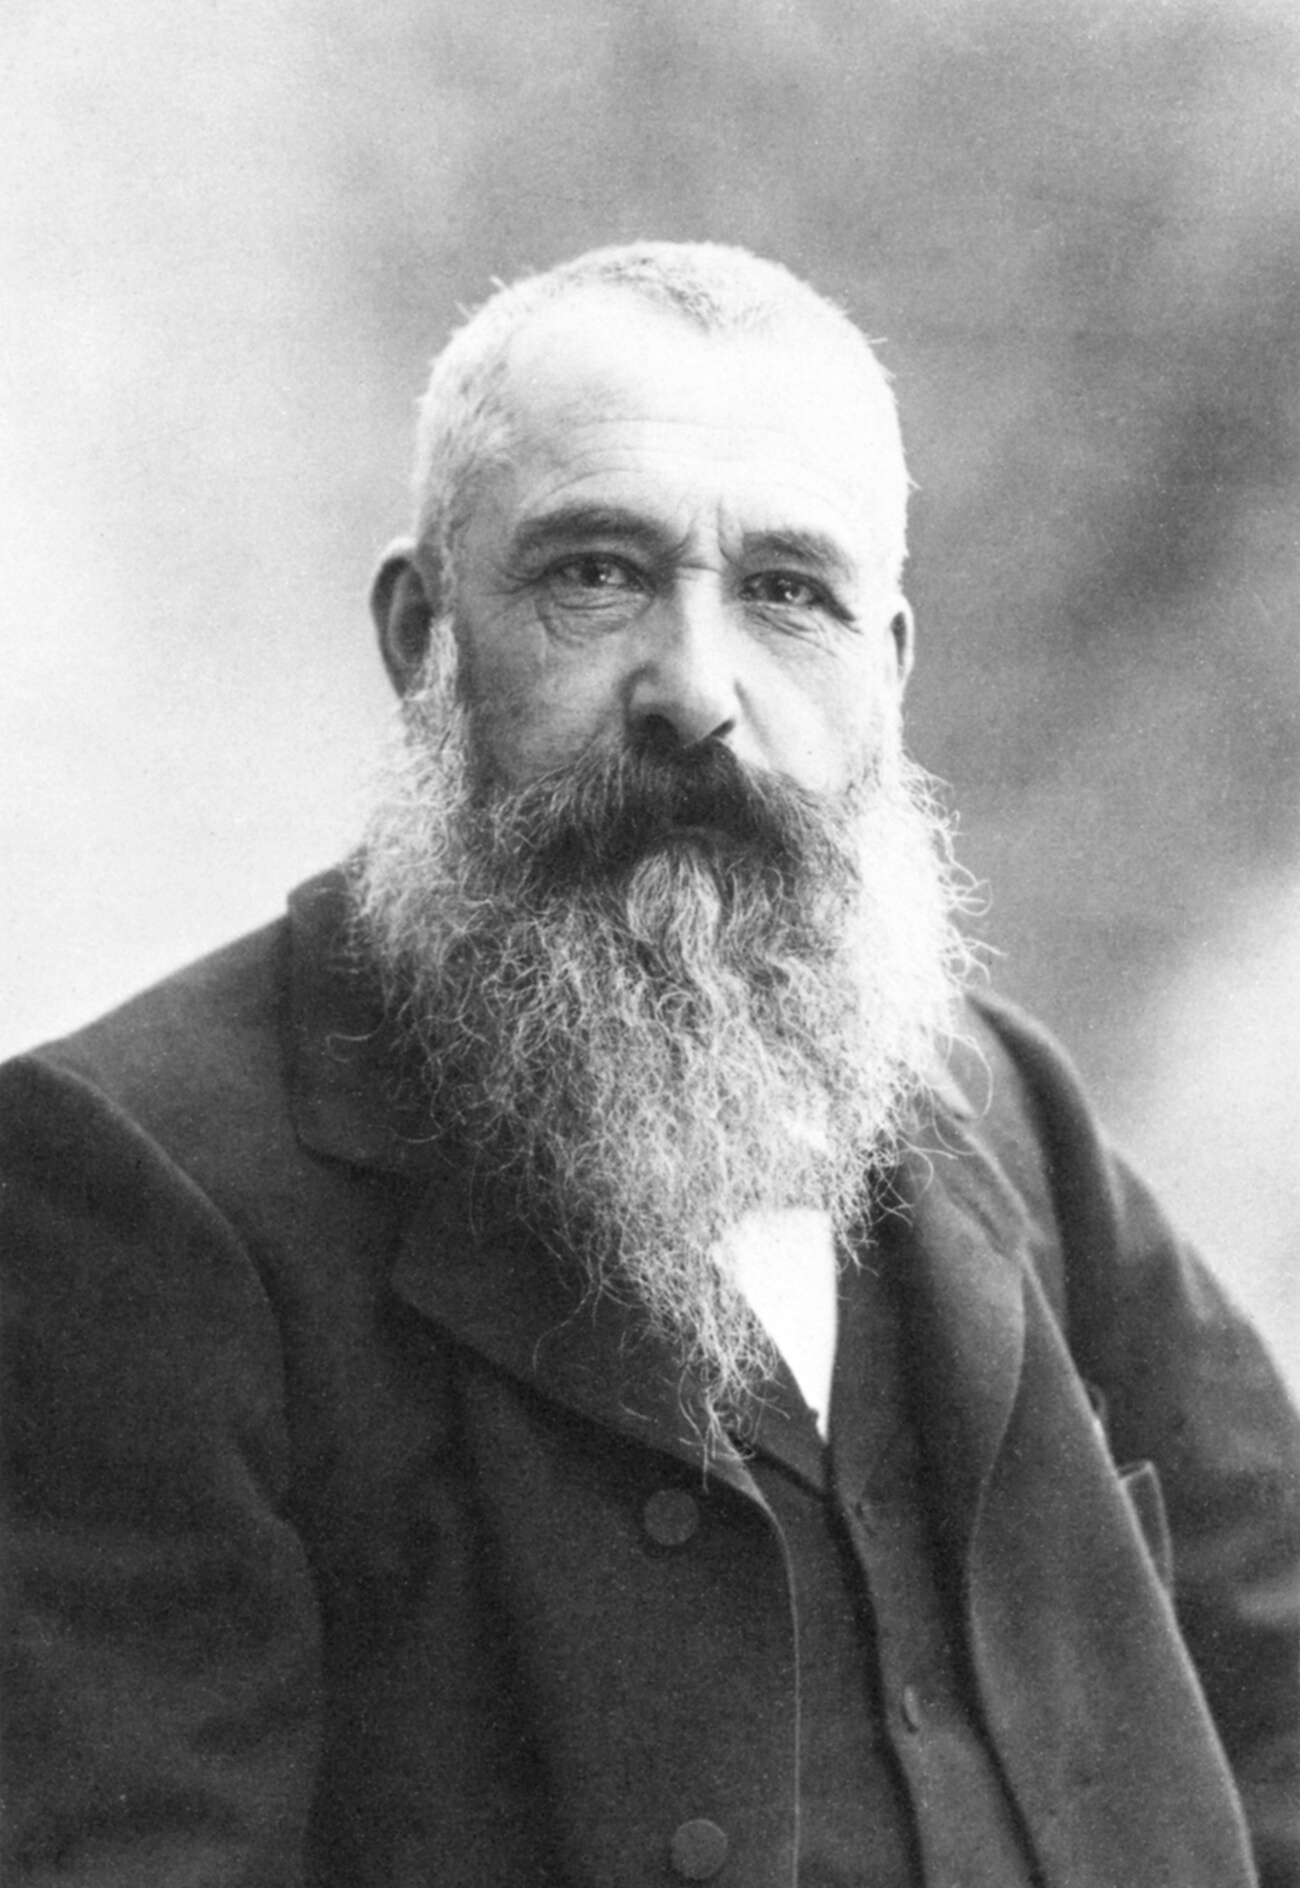 Claude Monet, with a full gray beard and close-cropped hair, wearing a dark coat over a suit jacket or vest.